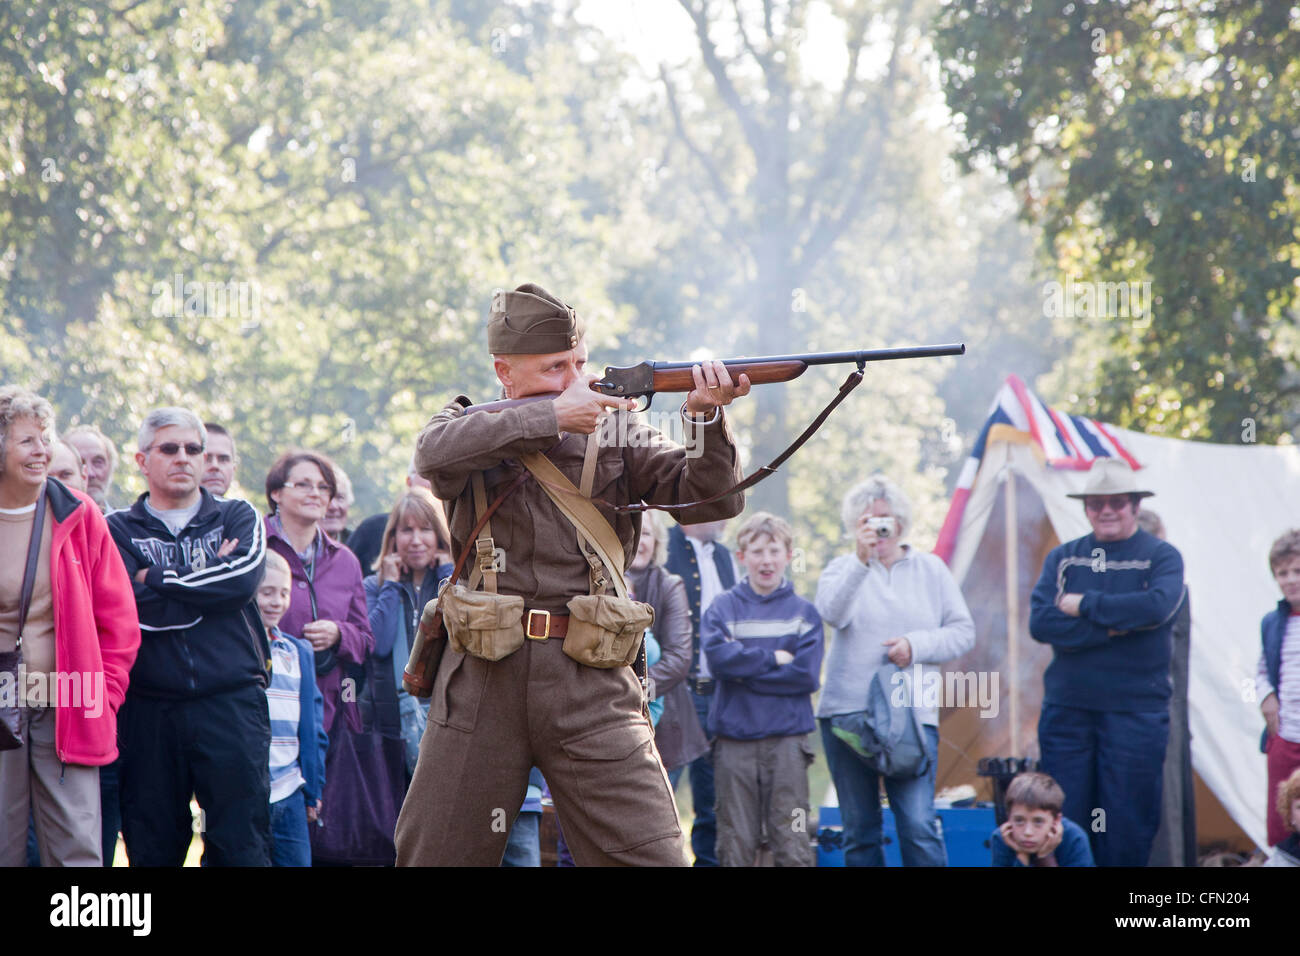 Demonstration of a Henry Martini Shotgun used by British army in second world war - Stock Image